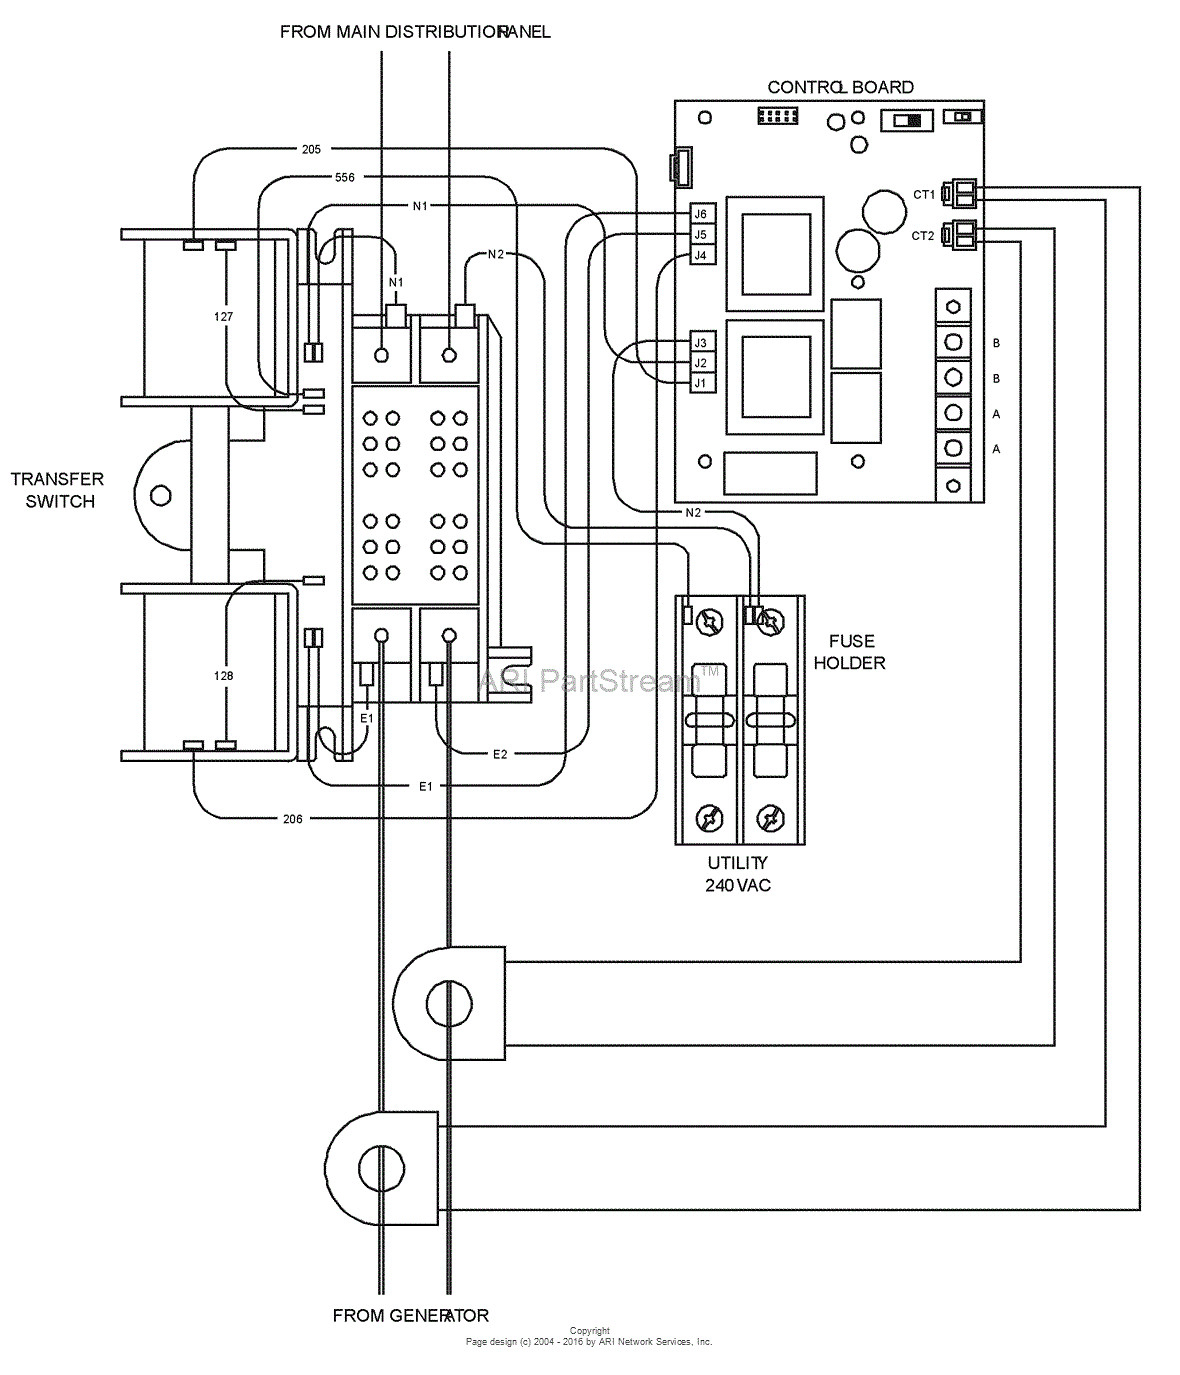 Cutler Hammer Automatic Transfer Switch Wiring Diagram Gallery Eaton Pull Out Briggs And Stratton Power Products 00 10 000